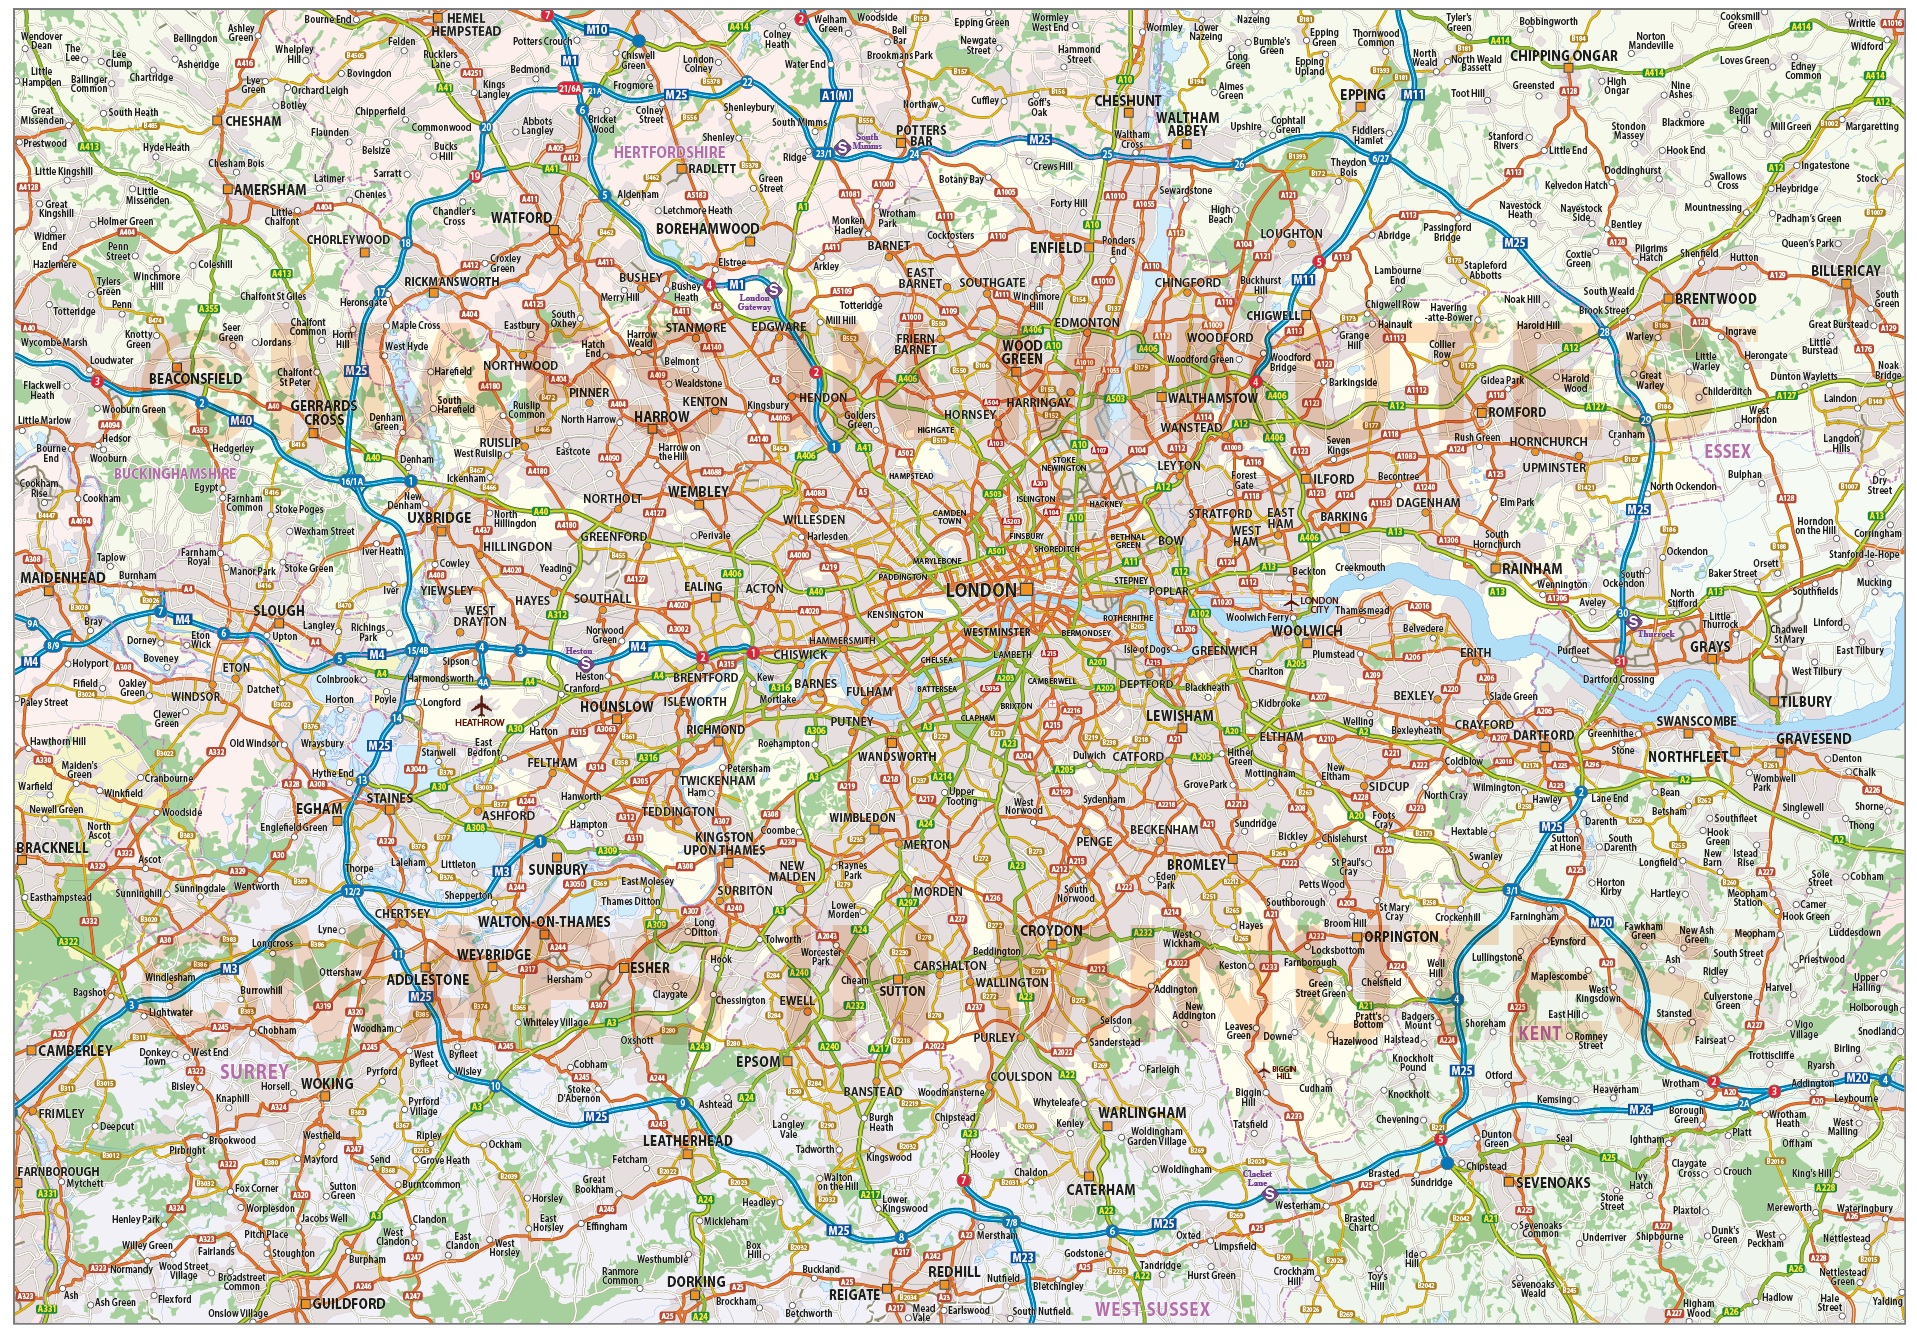 Greater London Map Pdf.Digital Vector Map Of Greater London M25 With Roads 250k Scale In